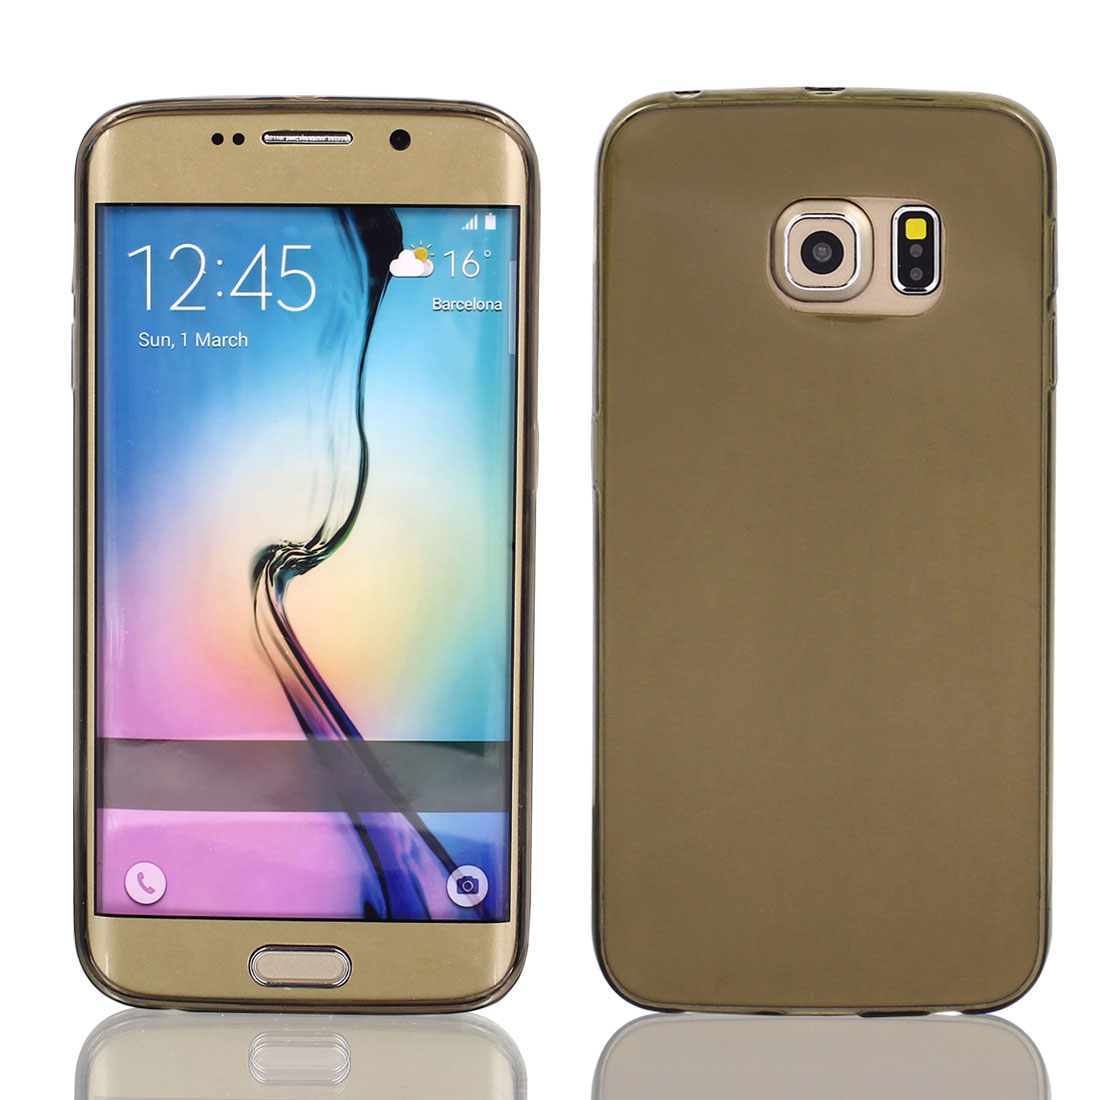 TPU Ultra Thin Case Cover Transparent Clear Gray for Galaxy S6 Edge G9200 G9250